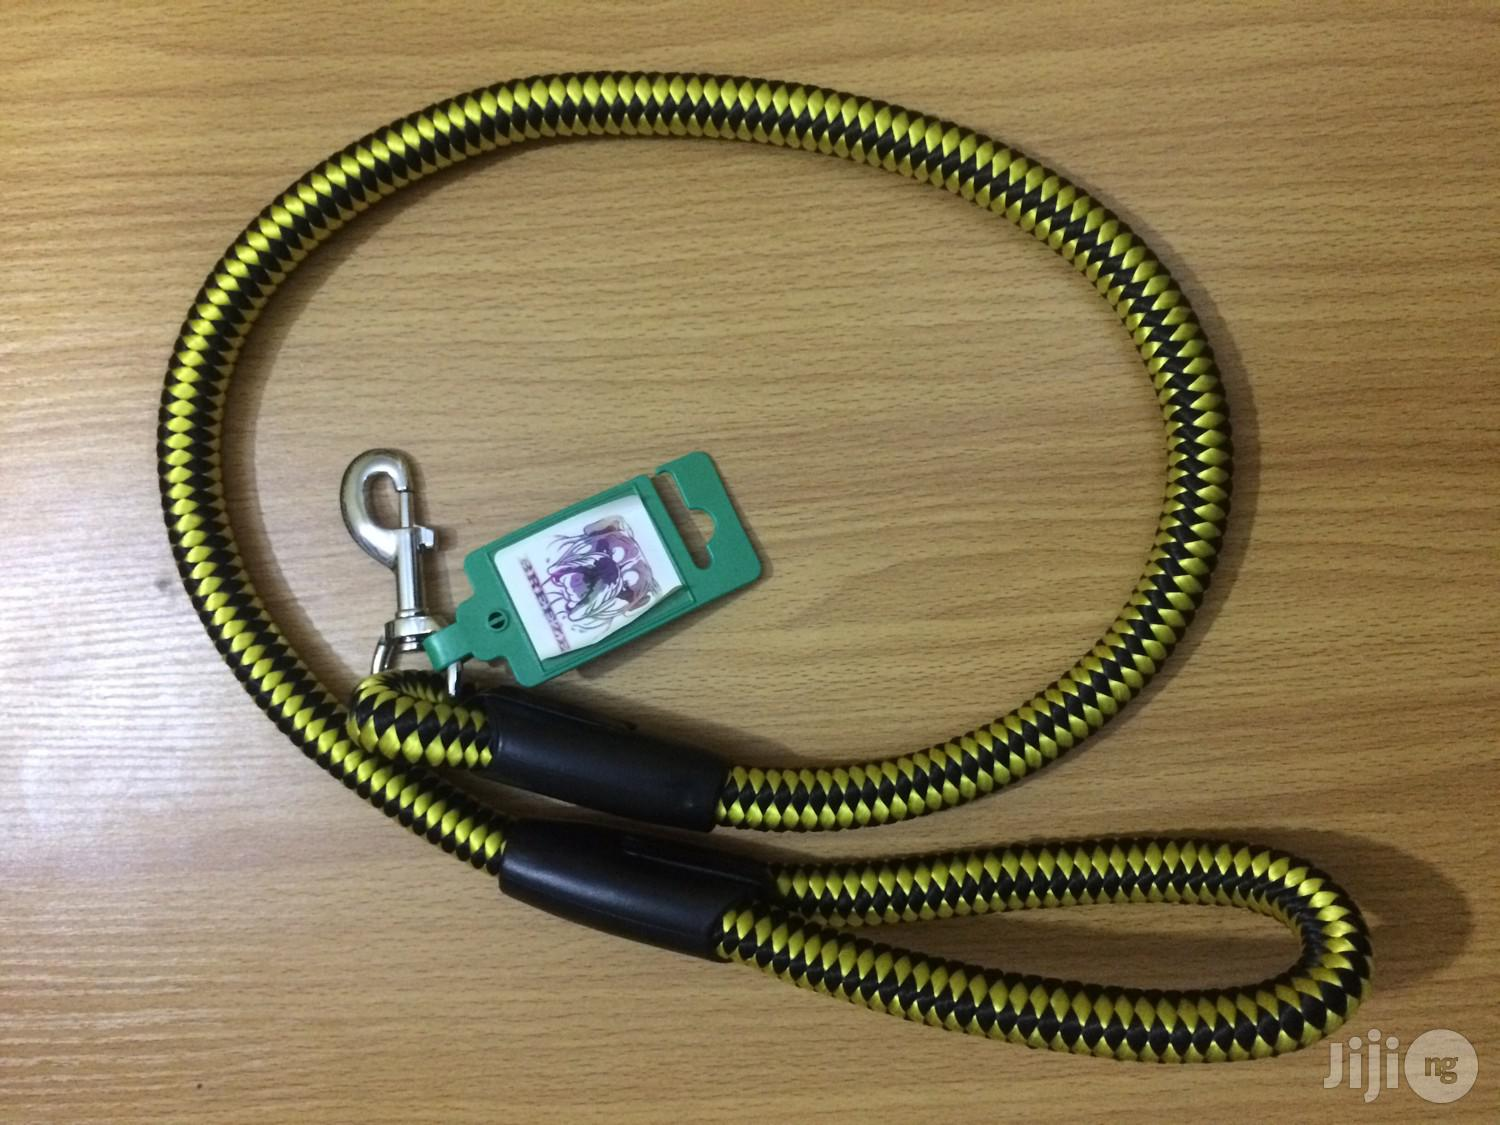 Dog Woven And Reflective Leach | Pet's Accessories for sale in Agege, Lagos State, Nigeria